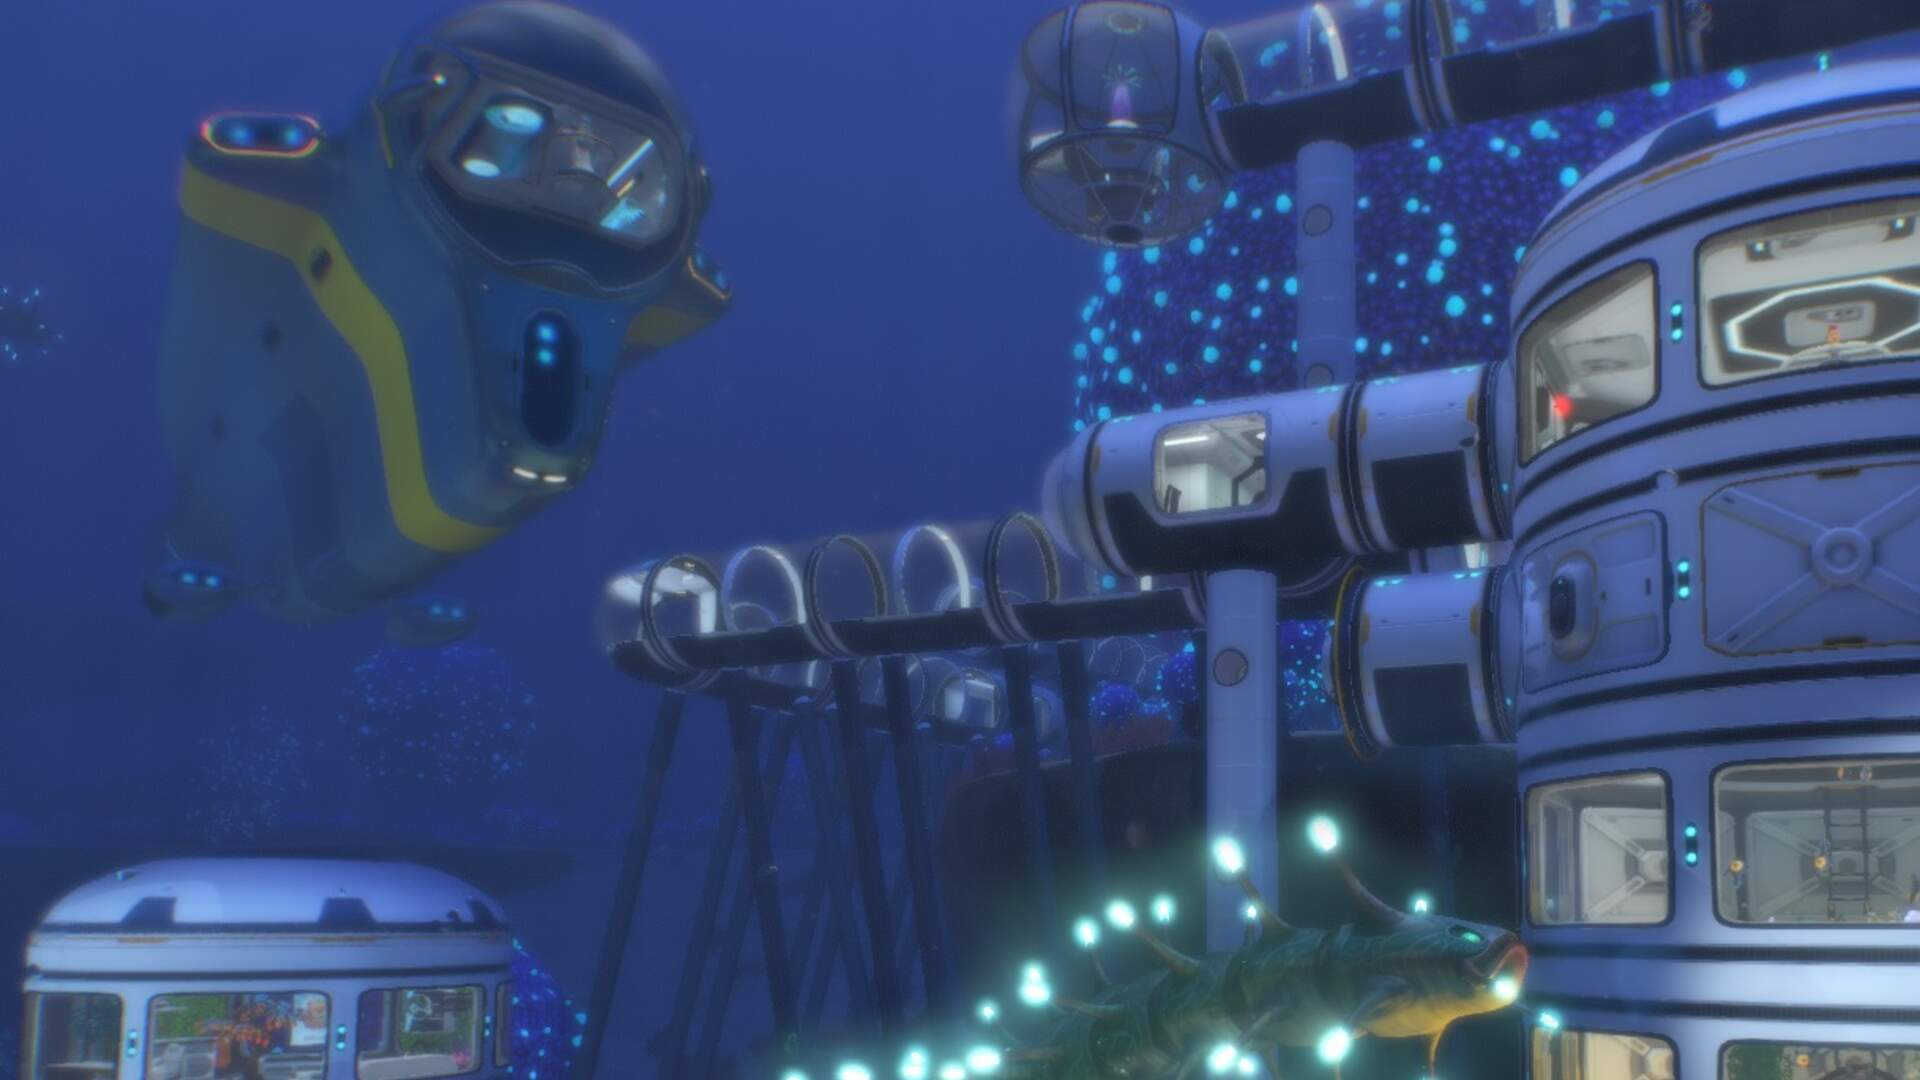 Where To Find Titanium Ingots In Subnautica Usgamer We look at life pod 6 a little bit closer. find titanium ingots in subnautica